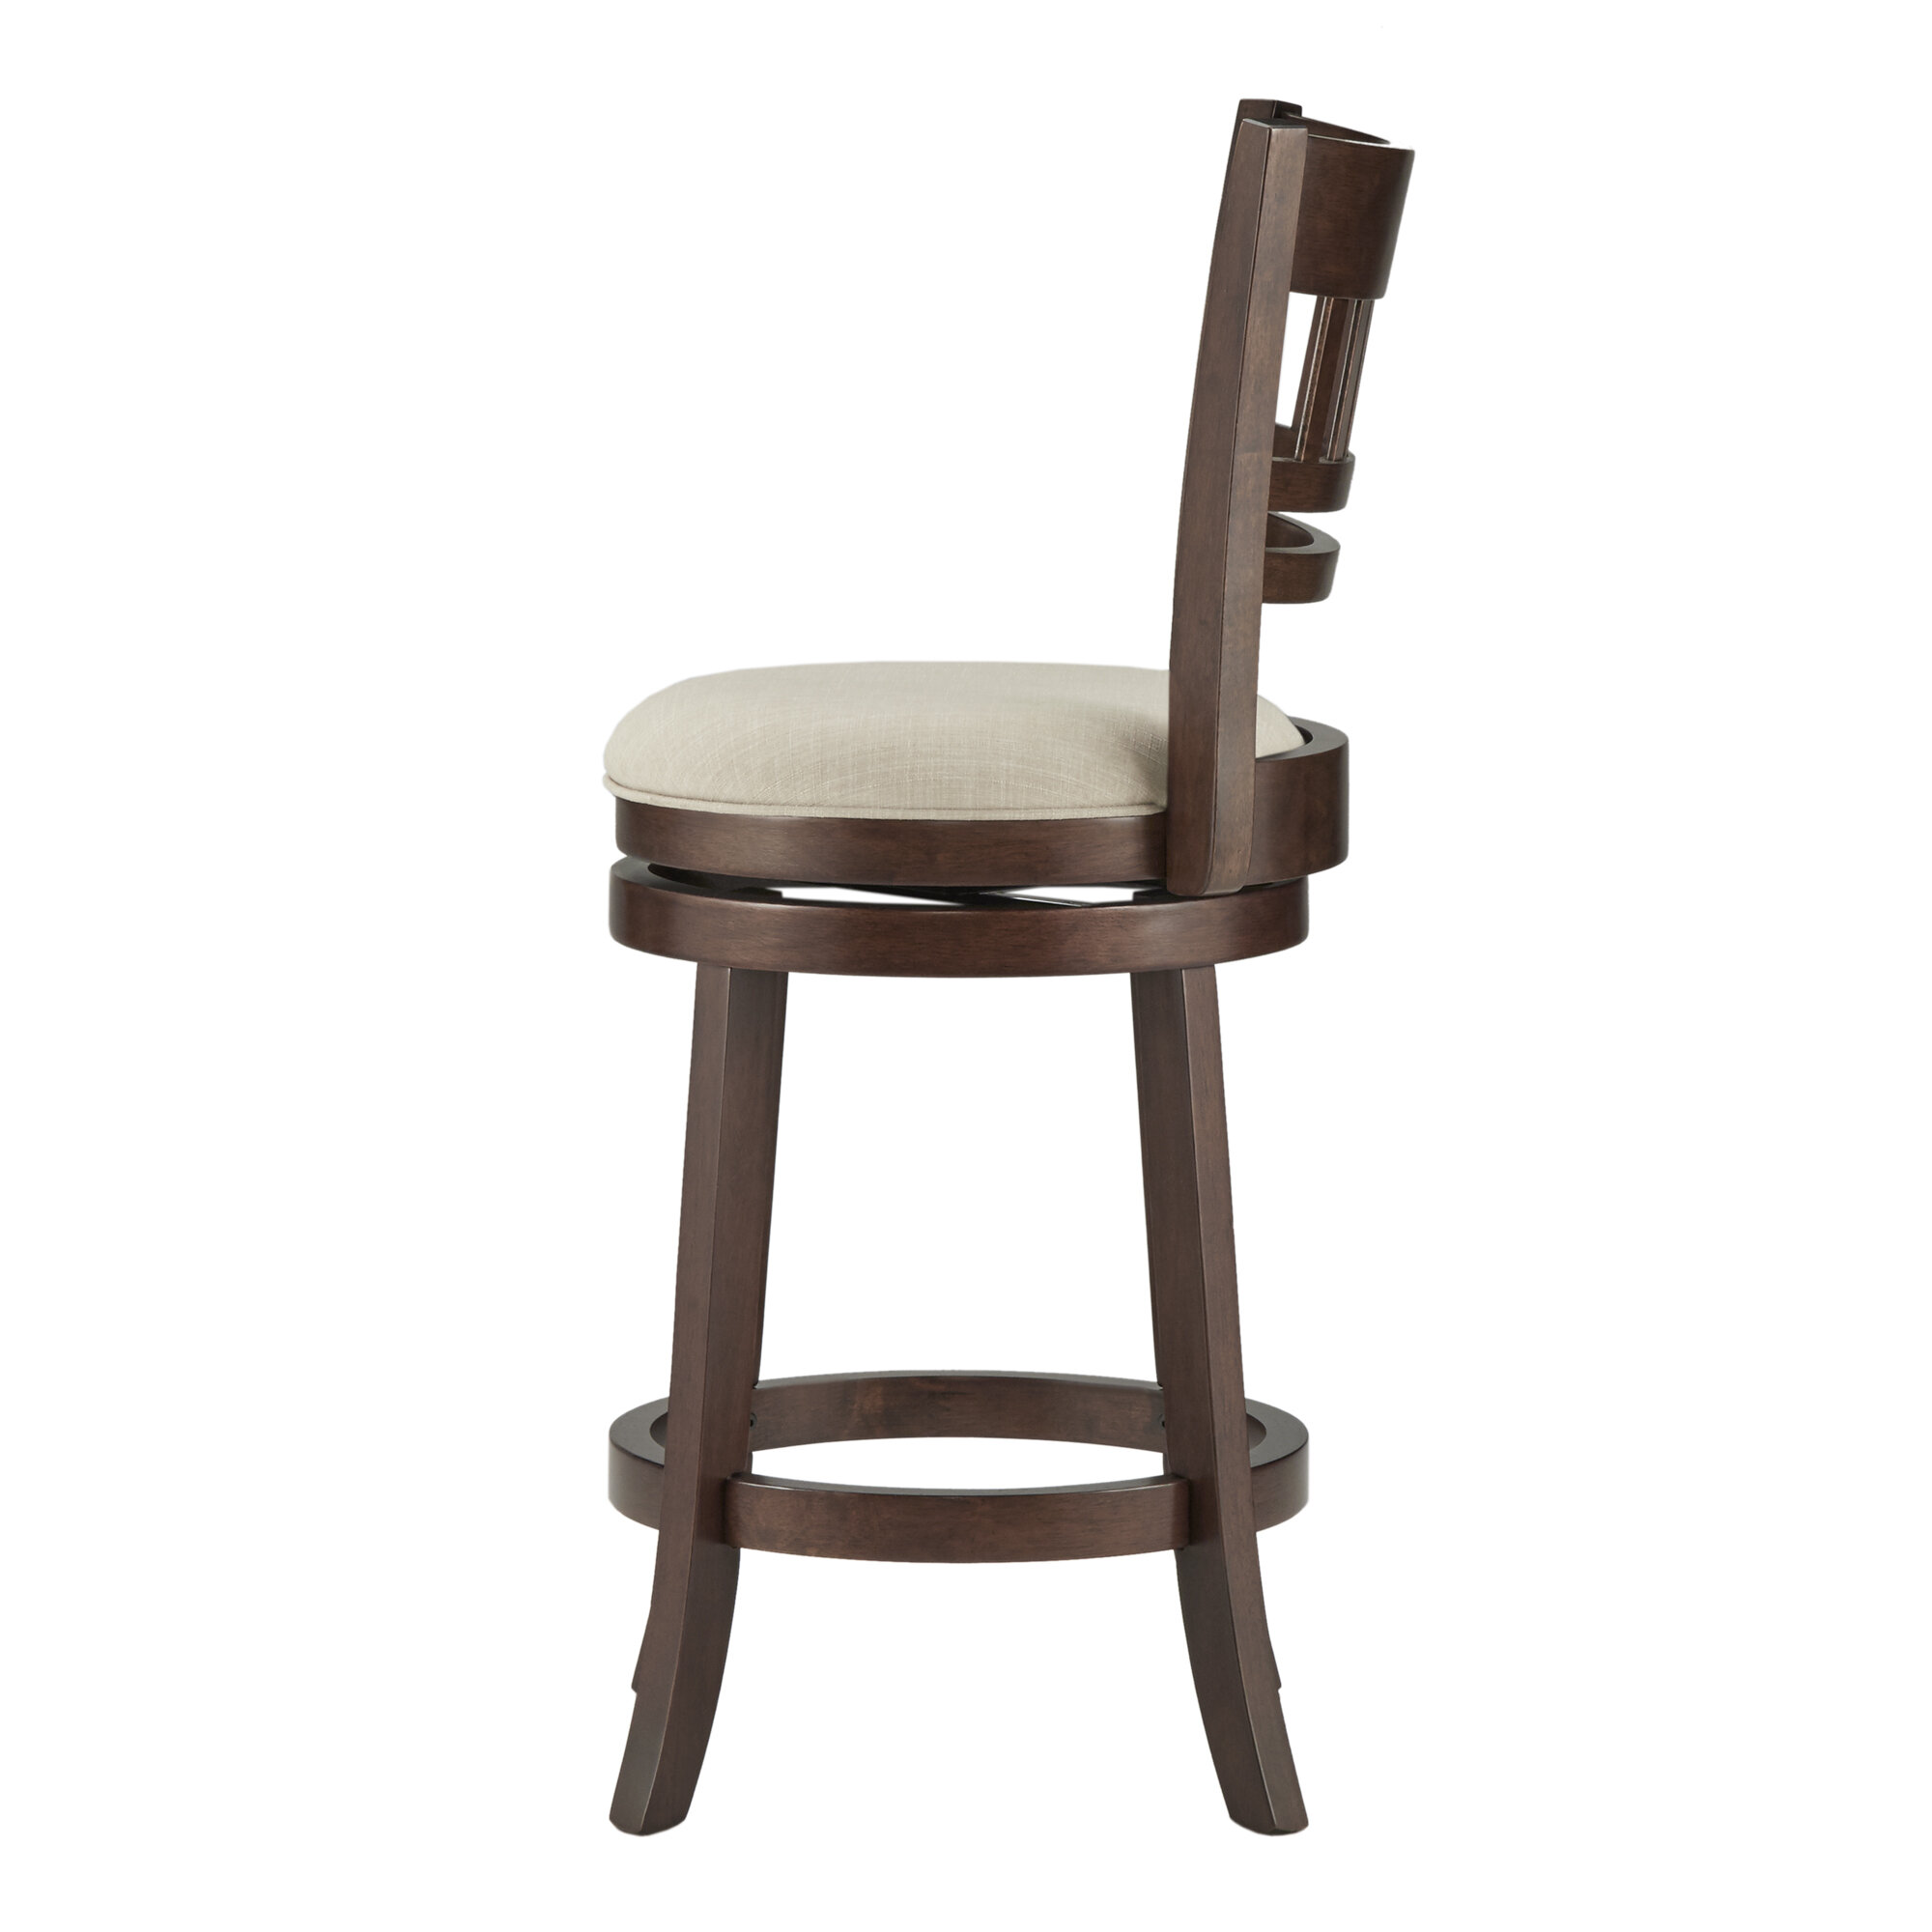 Groovy Dupont 24 Swivel Counter Stool Unemploymentrelief Wooden Chair Designs For Living Room Unemploymentrelieforg